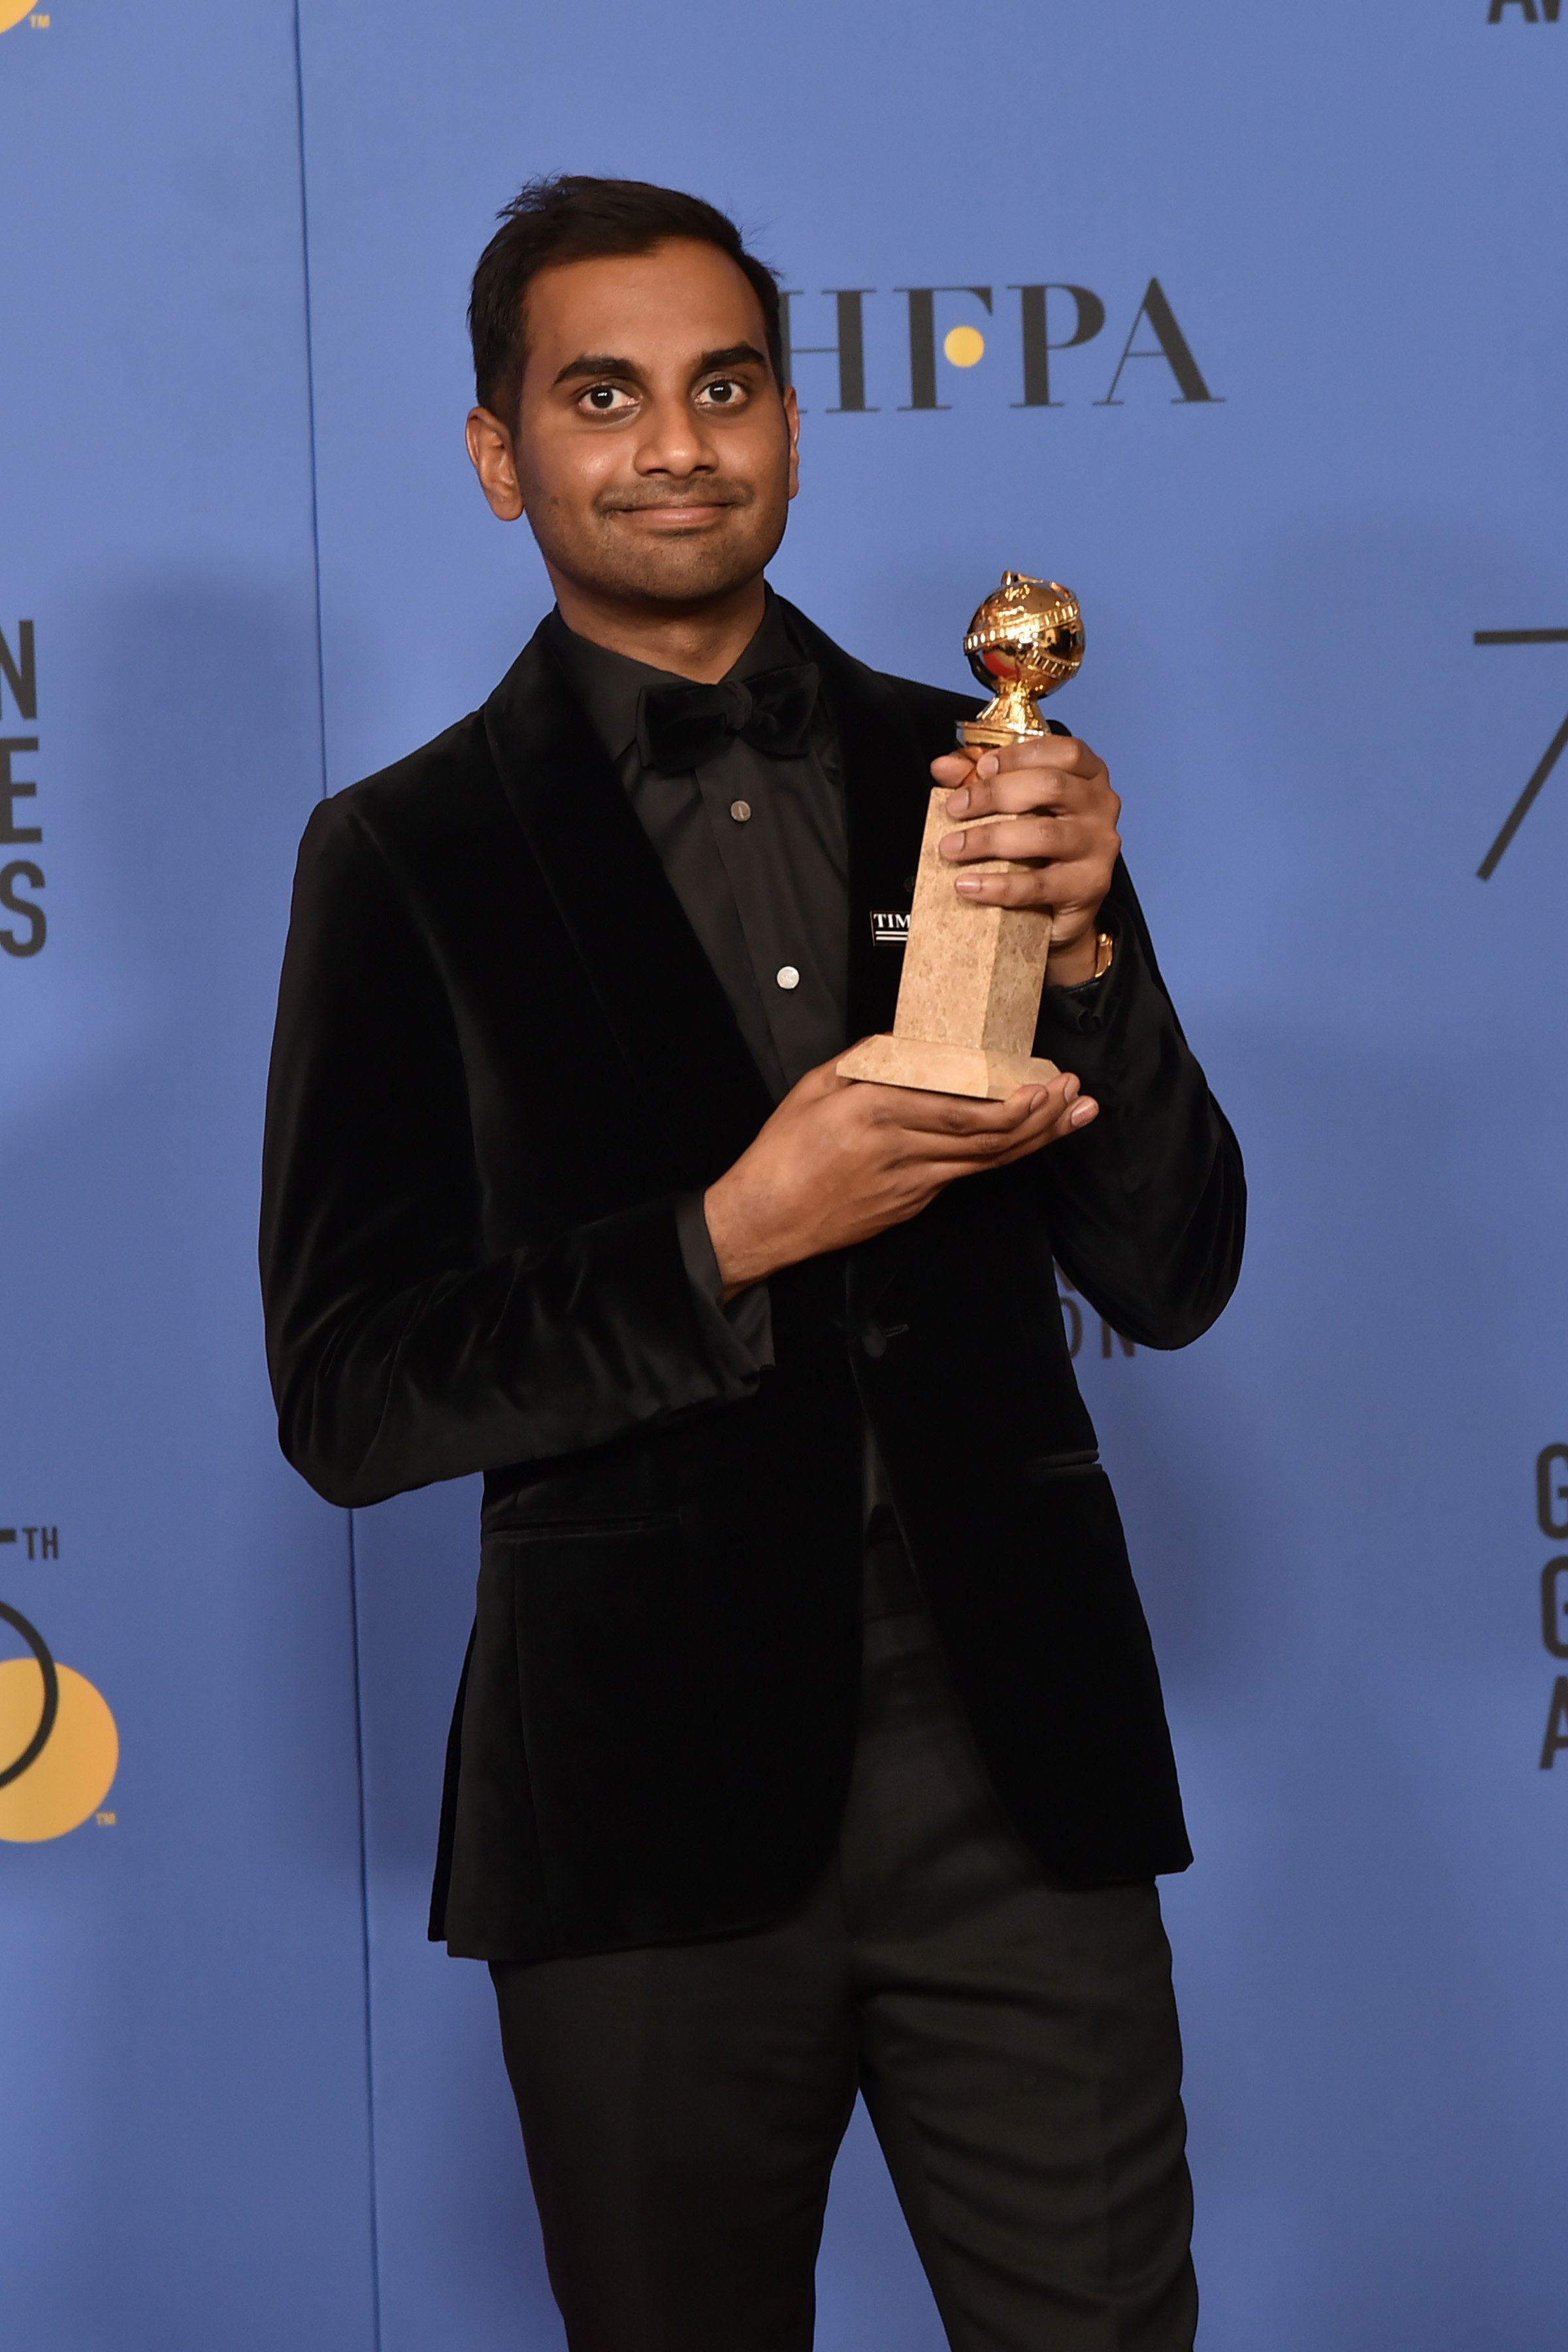 BEVERLY HILLS, CA - JANUARY 07:  Aziz Ansari attends the 75th Annual Golden Globe Awards - Press Room at The Beverly Hilton Hotel on January 7, 2018 in Beverly Hills, California.  (Photo by David Crotty/Patrick McMullan via Getty Images)